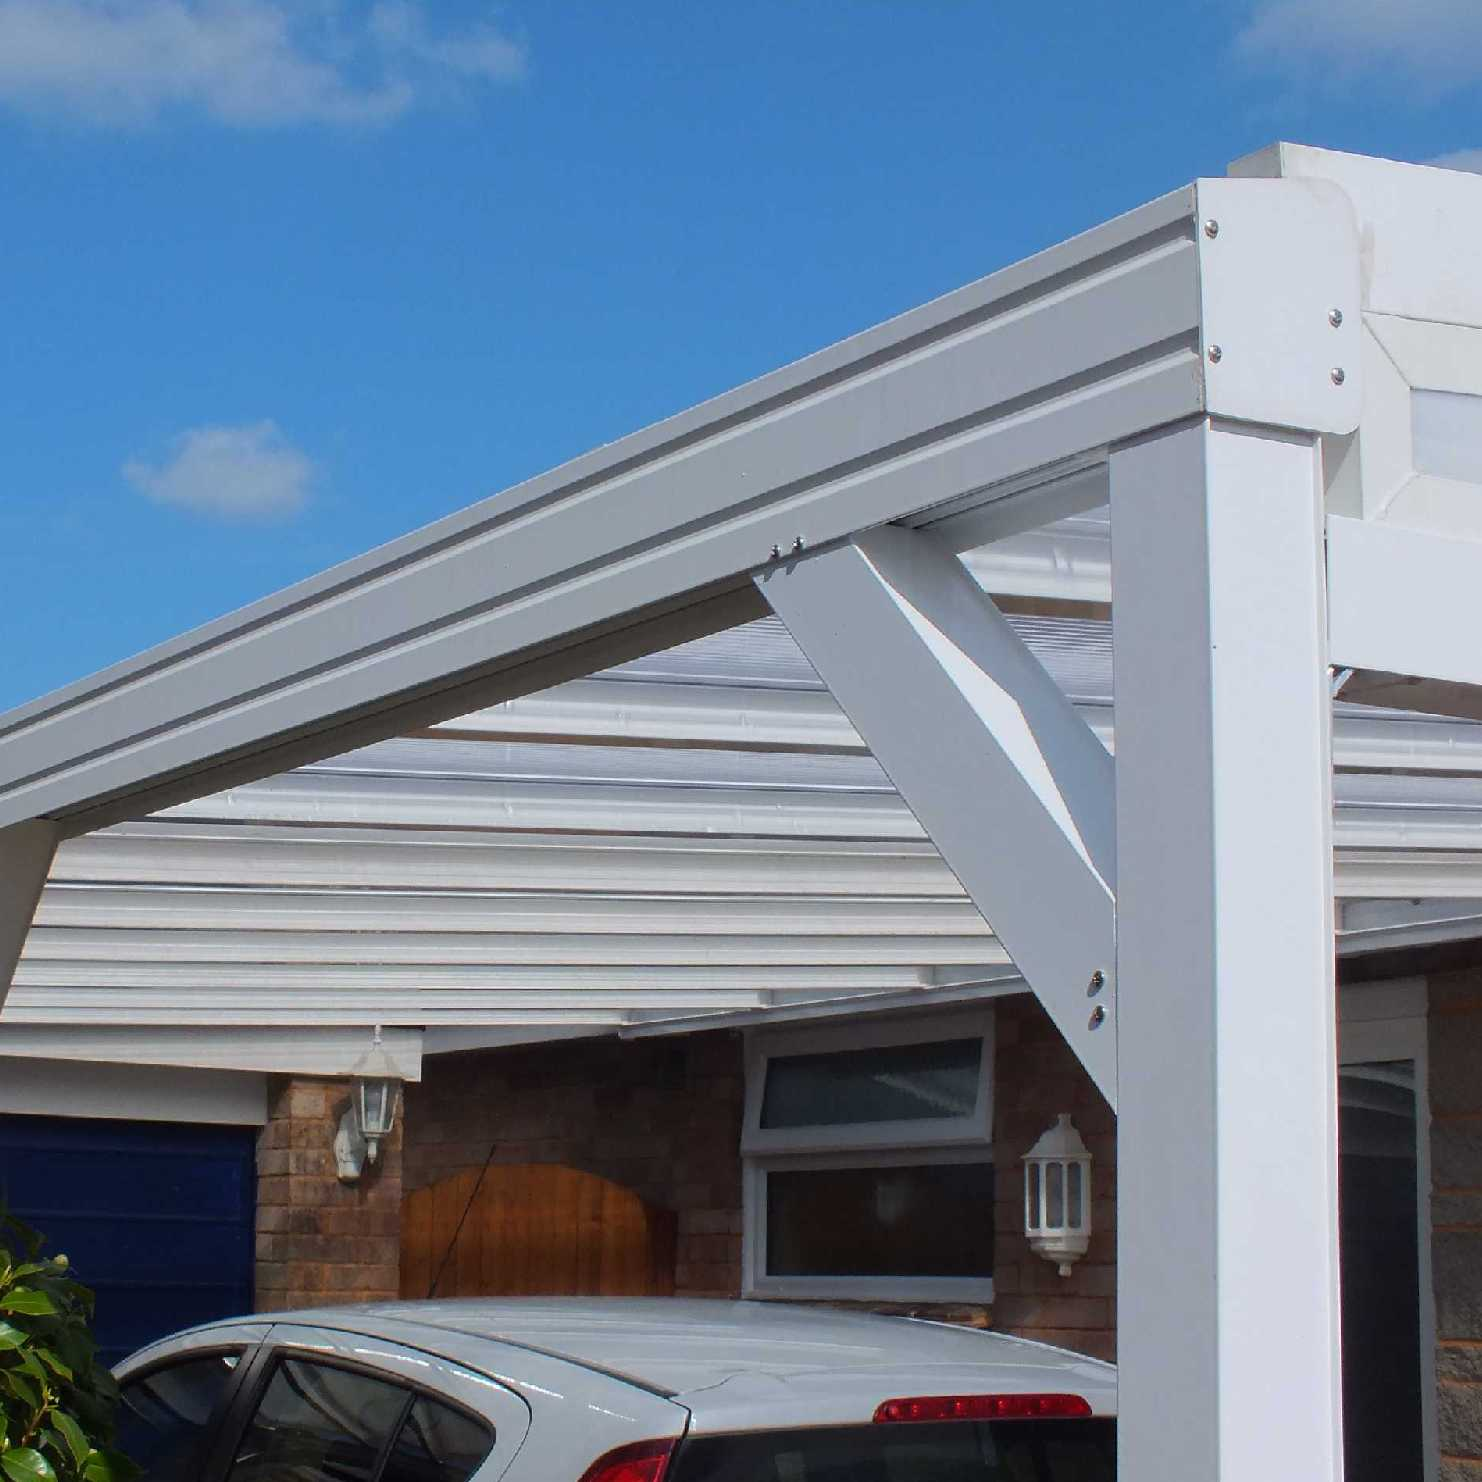 Great deals on Omega Smart White Lean-To Canopy with 16mm Polycarbonate Glazing - 11.4m (W) x 4.0m (P), (5) Supporting Posts